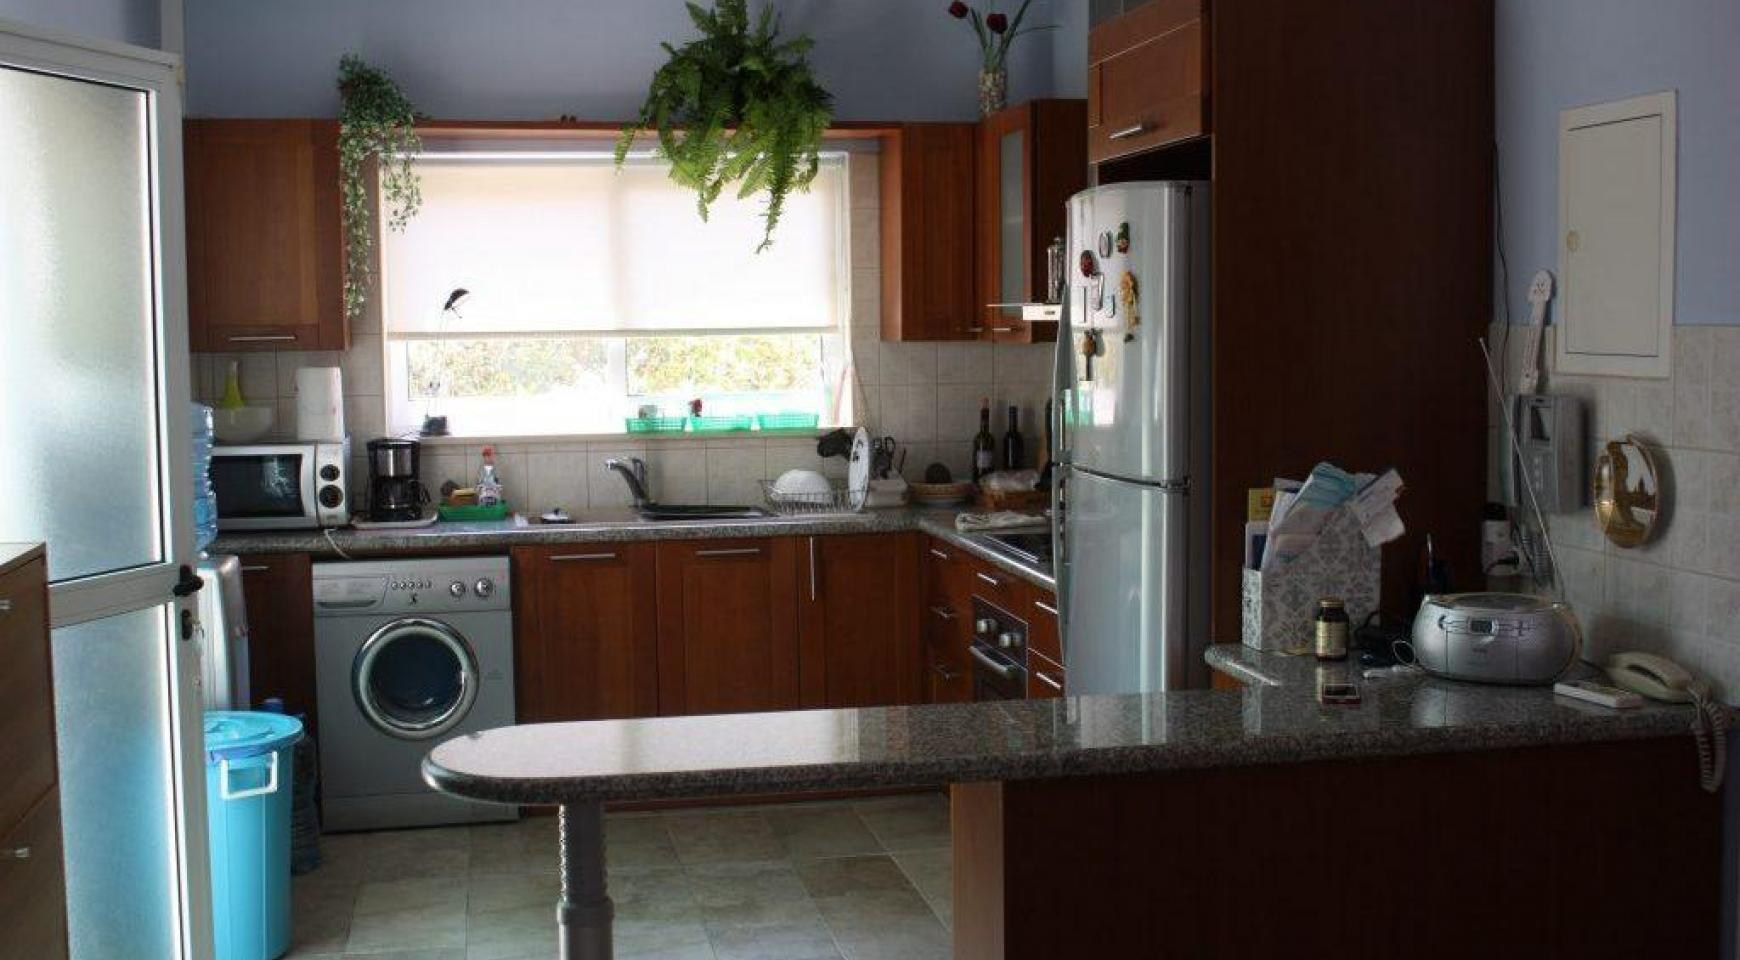 3 Bedroom House in Potamos Germasogeia Area - 7